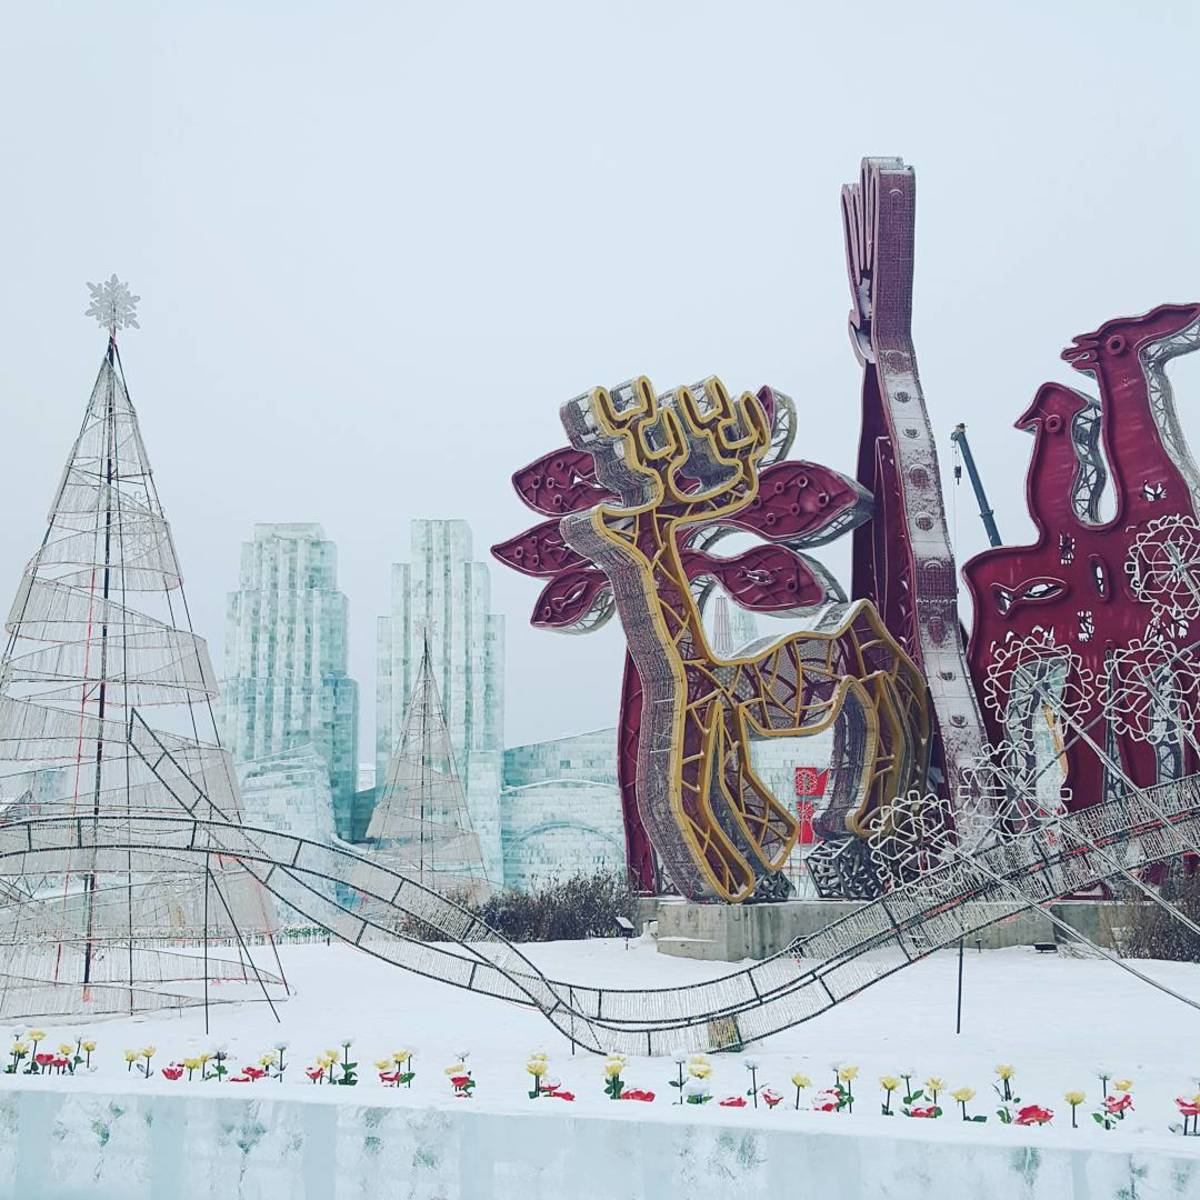 Visit the Harbin Ice Festival